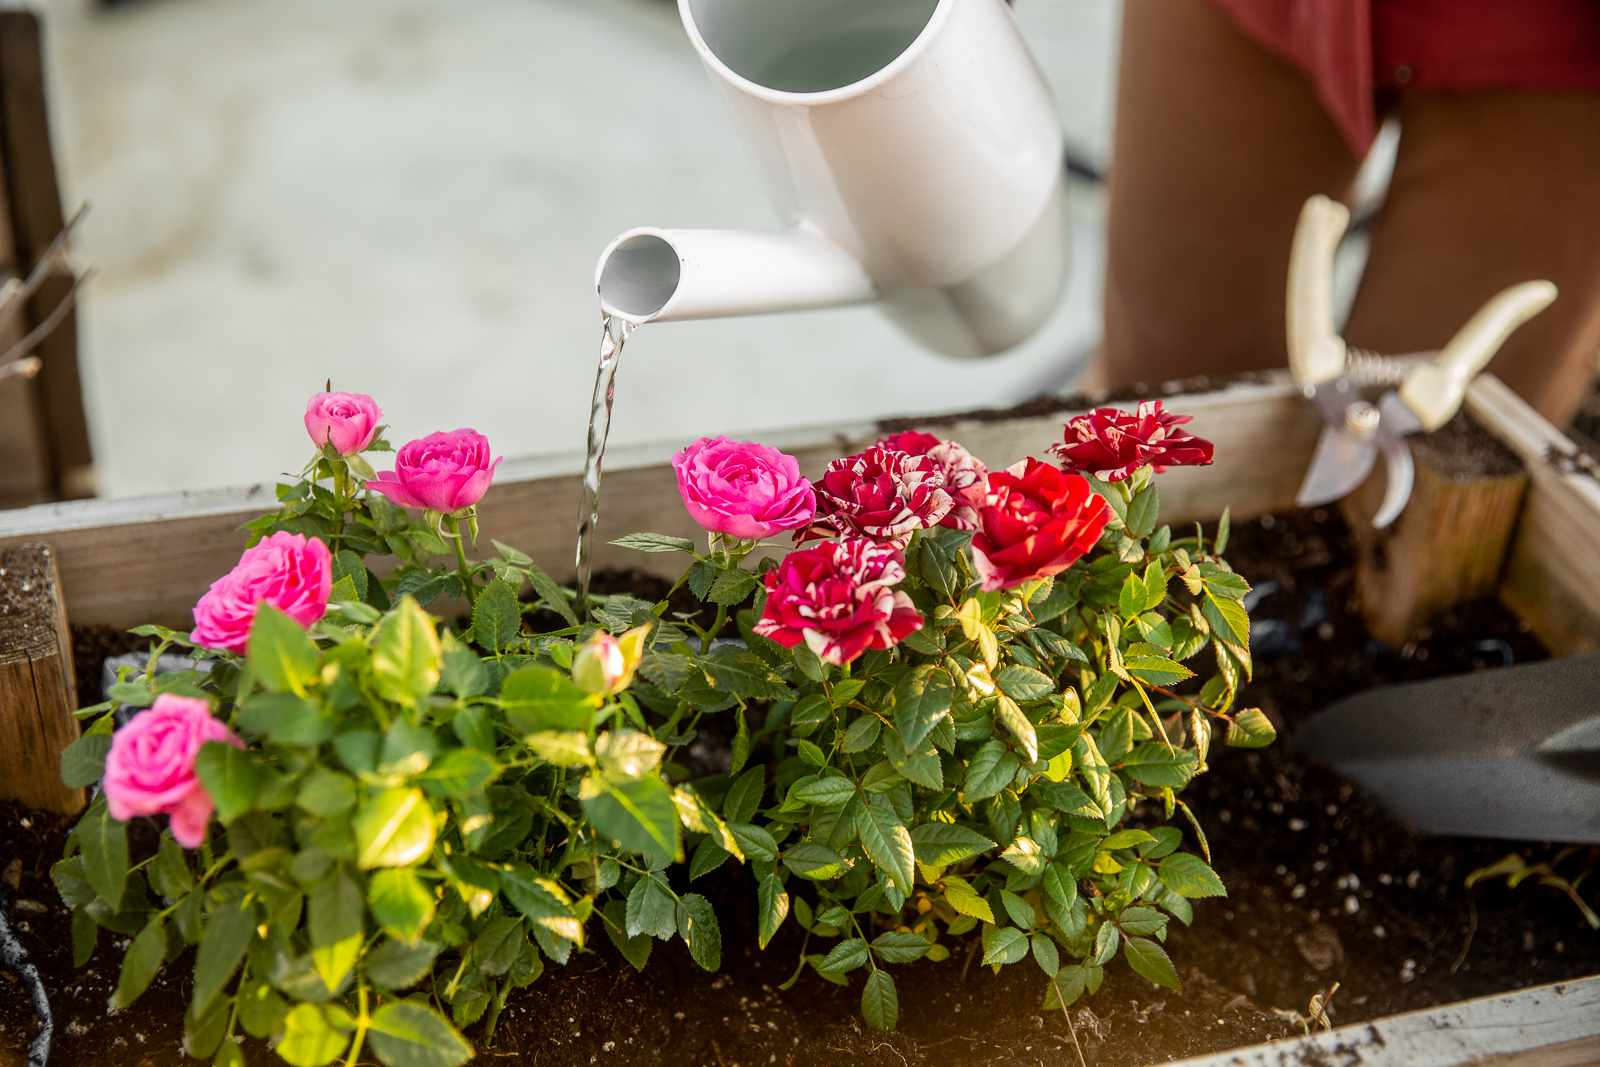 White watering can pouring water over pink and red and white splattered roses in garden bed